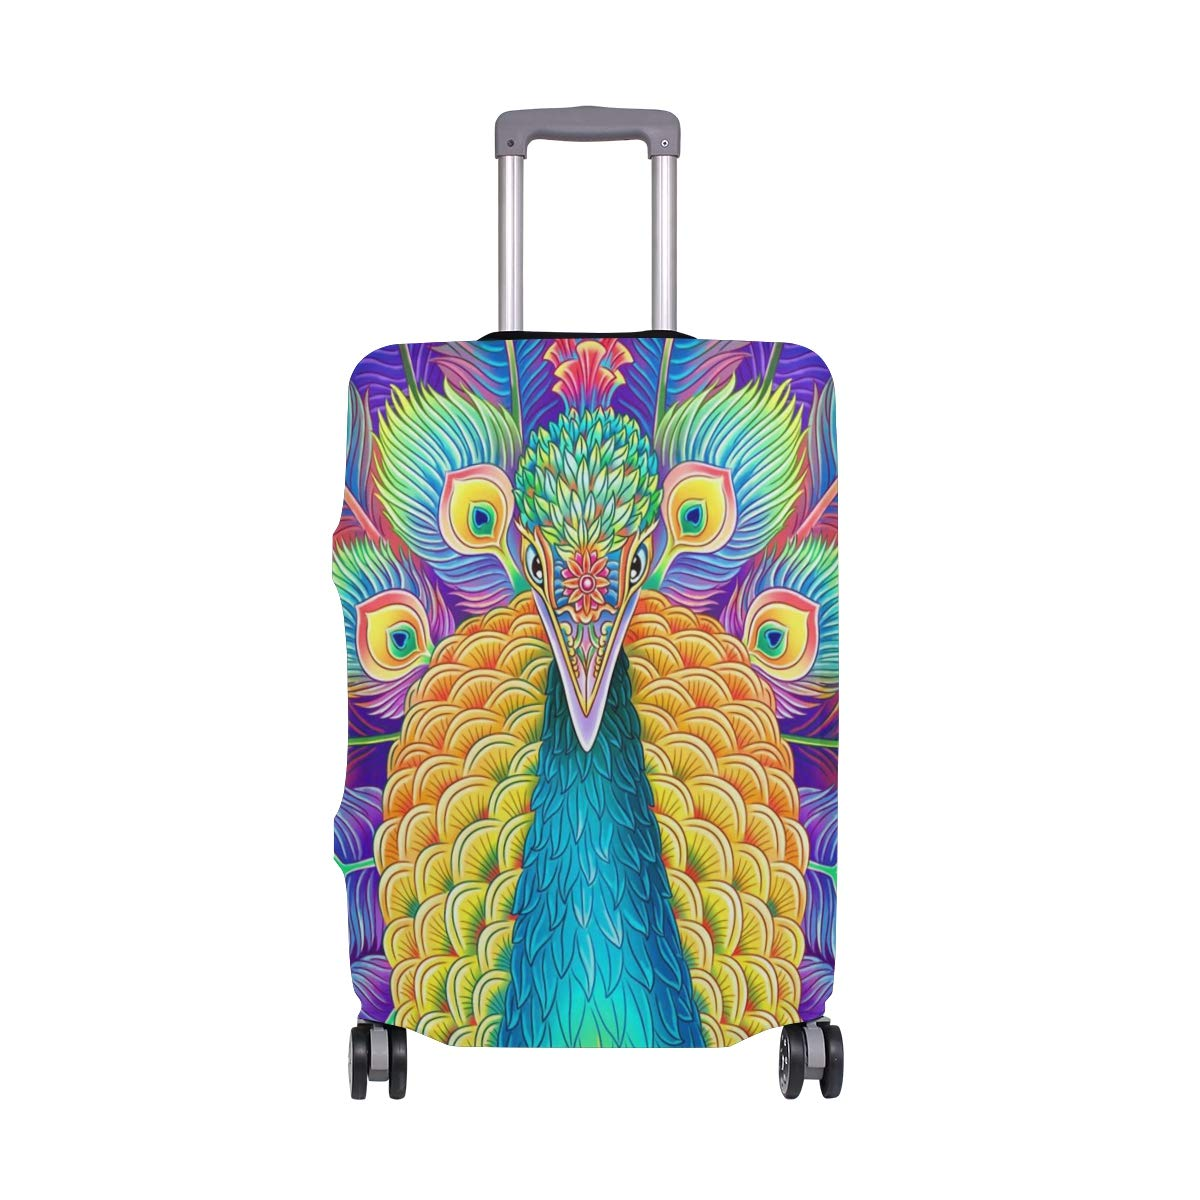 Peafowl Bird Travel Luggage Cover Suitcase Protector Fits 26-28 Inch Washable Baggage Covers